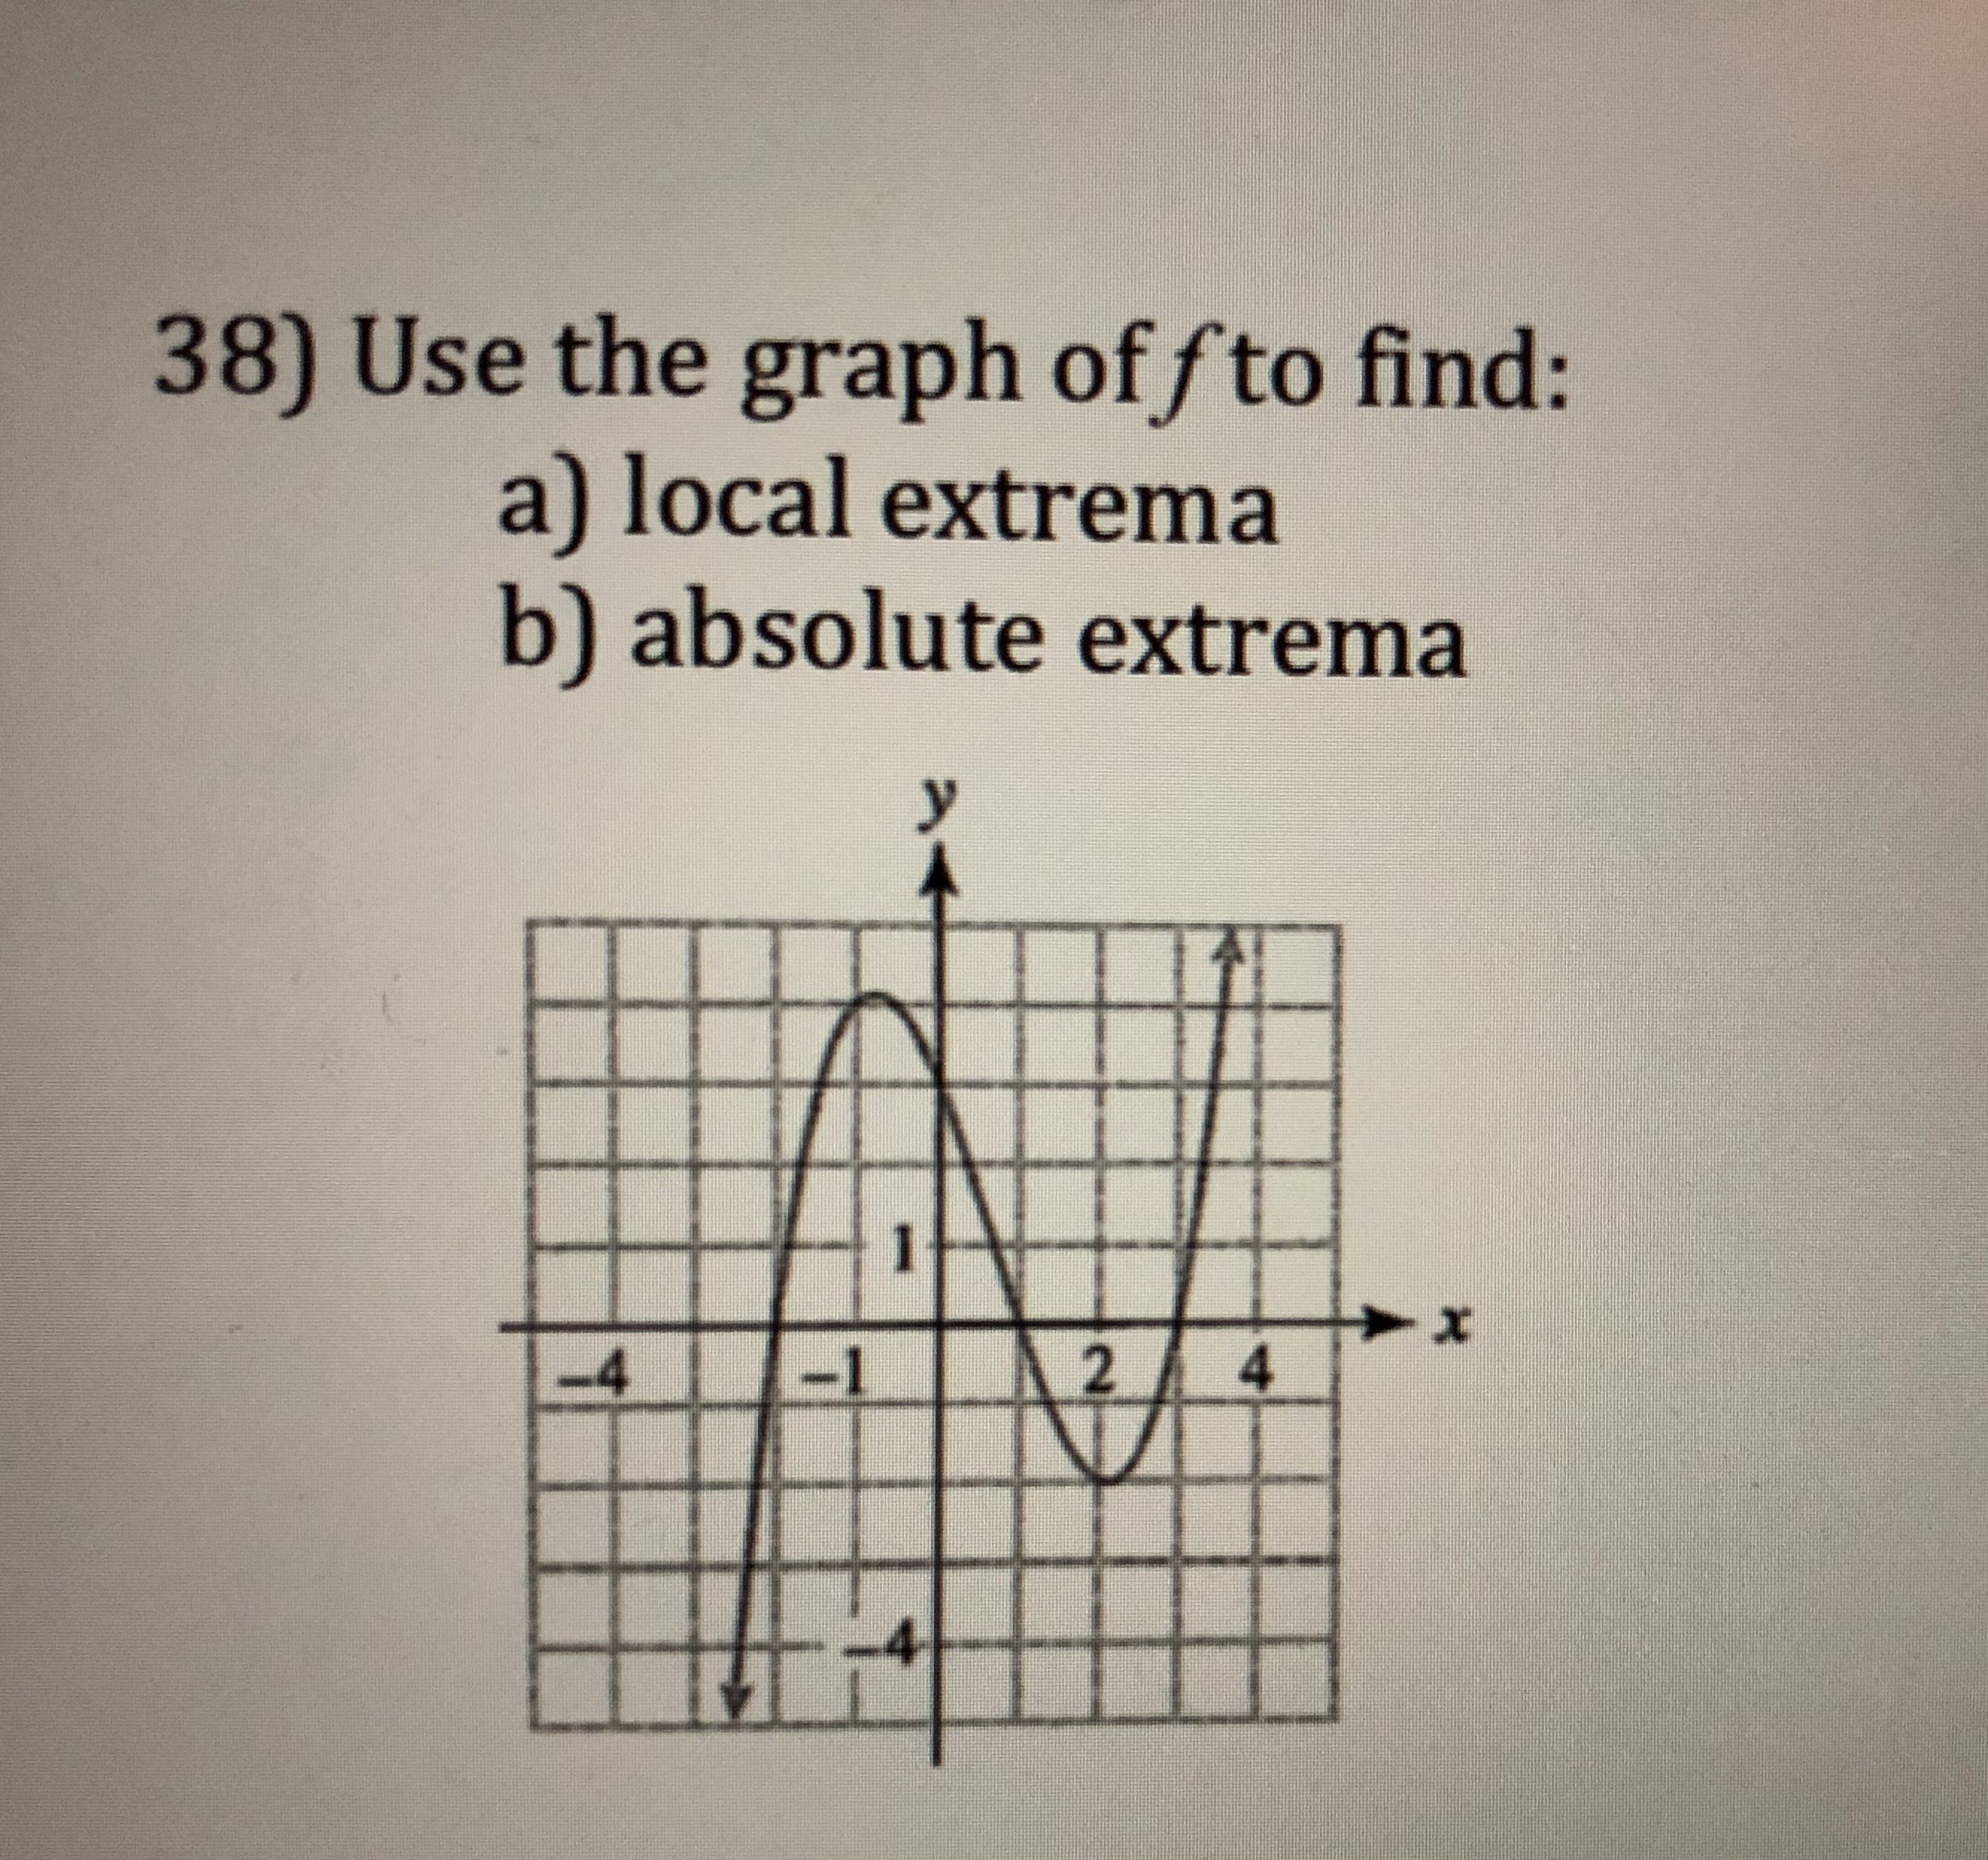 38) Use the graph of fto find: a) local extrema b) absolute extrema 4